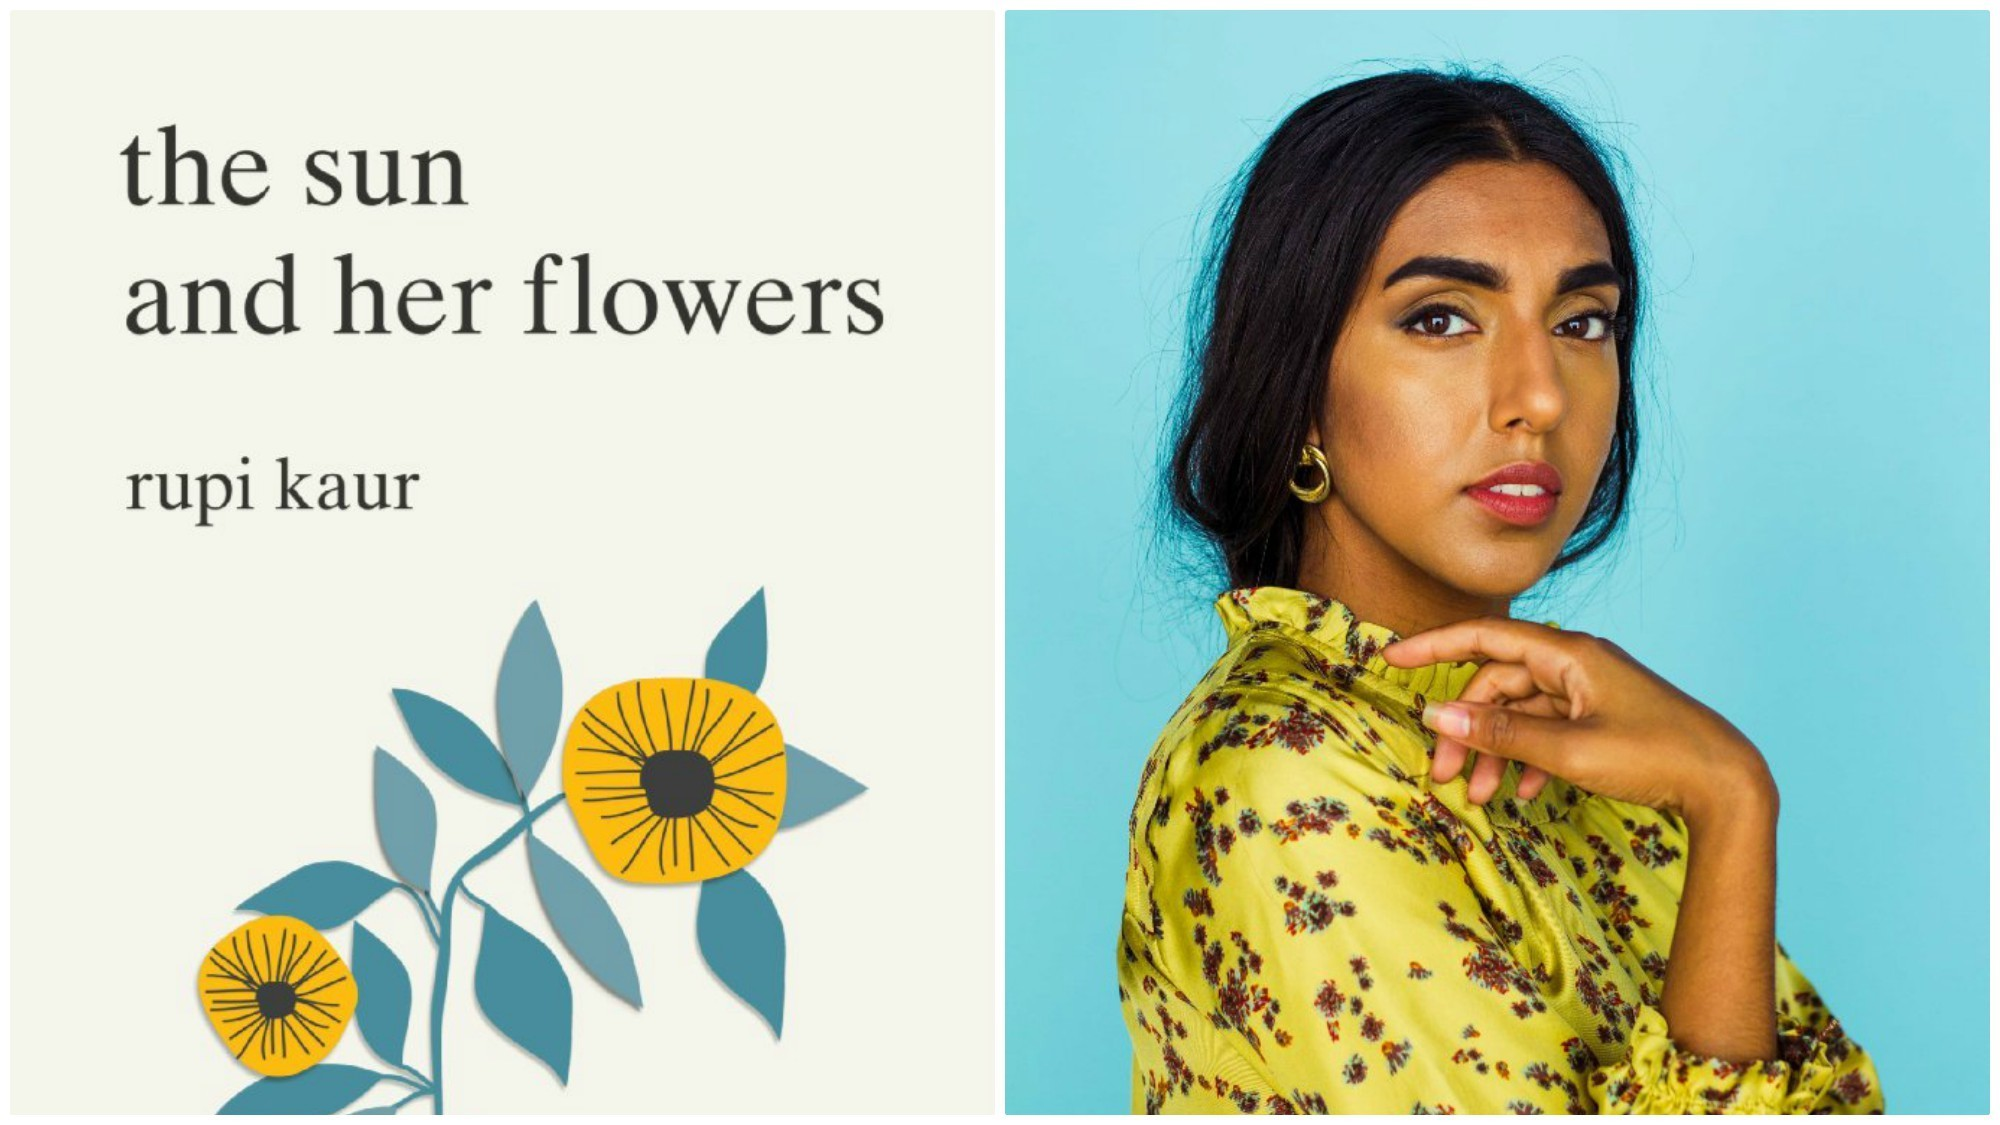 """Rupi Kaur's new book """"The Sun and Her Flowers,"""" and portrait of 25-year-old Canadian poet Rupi Kaur."""